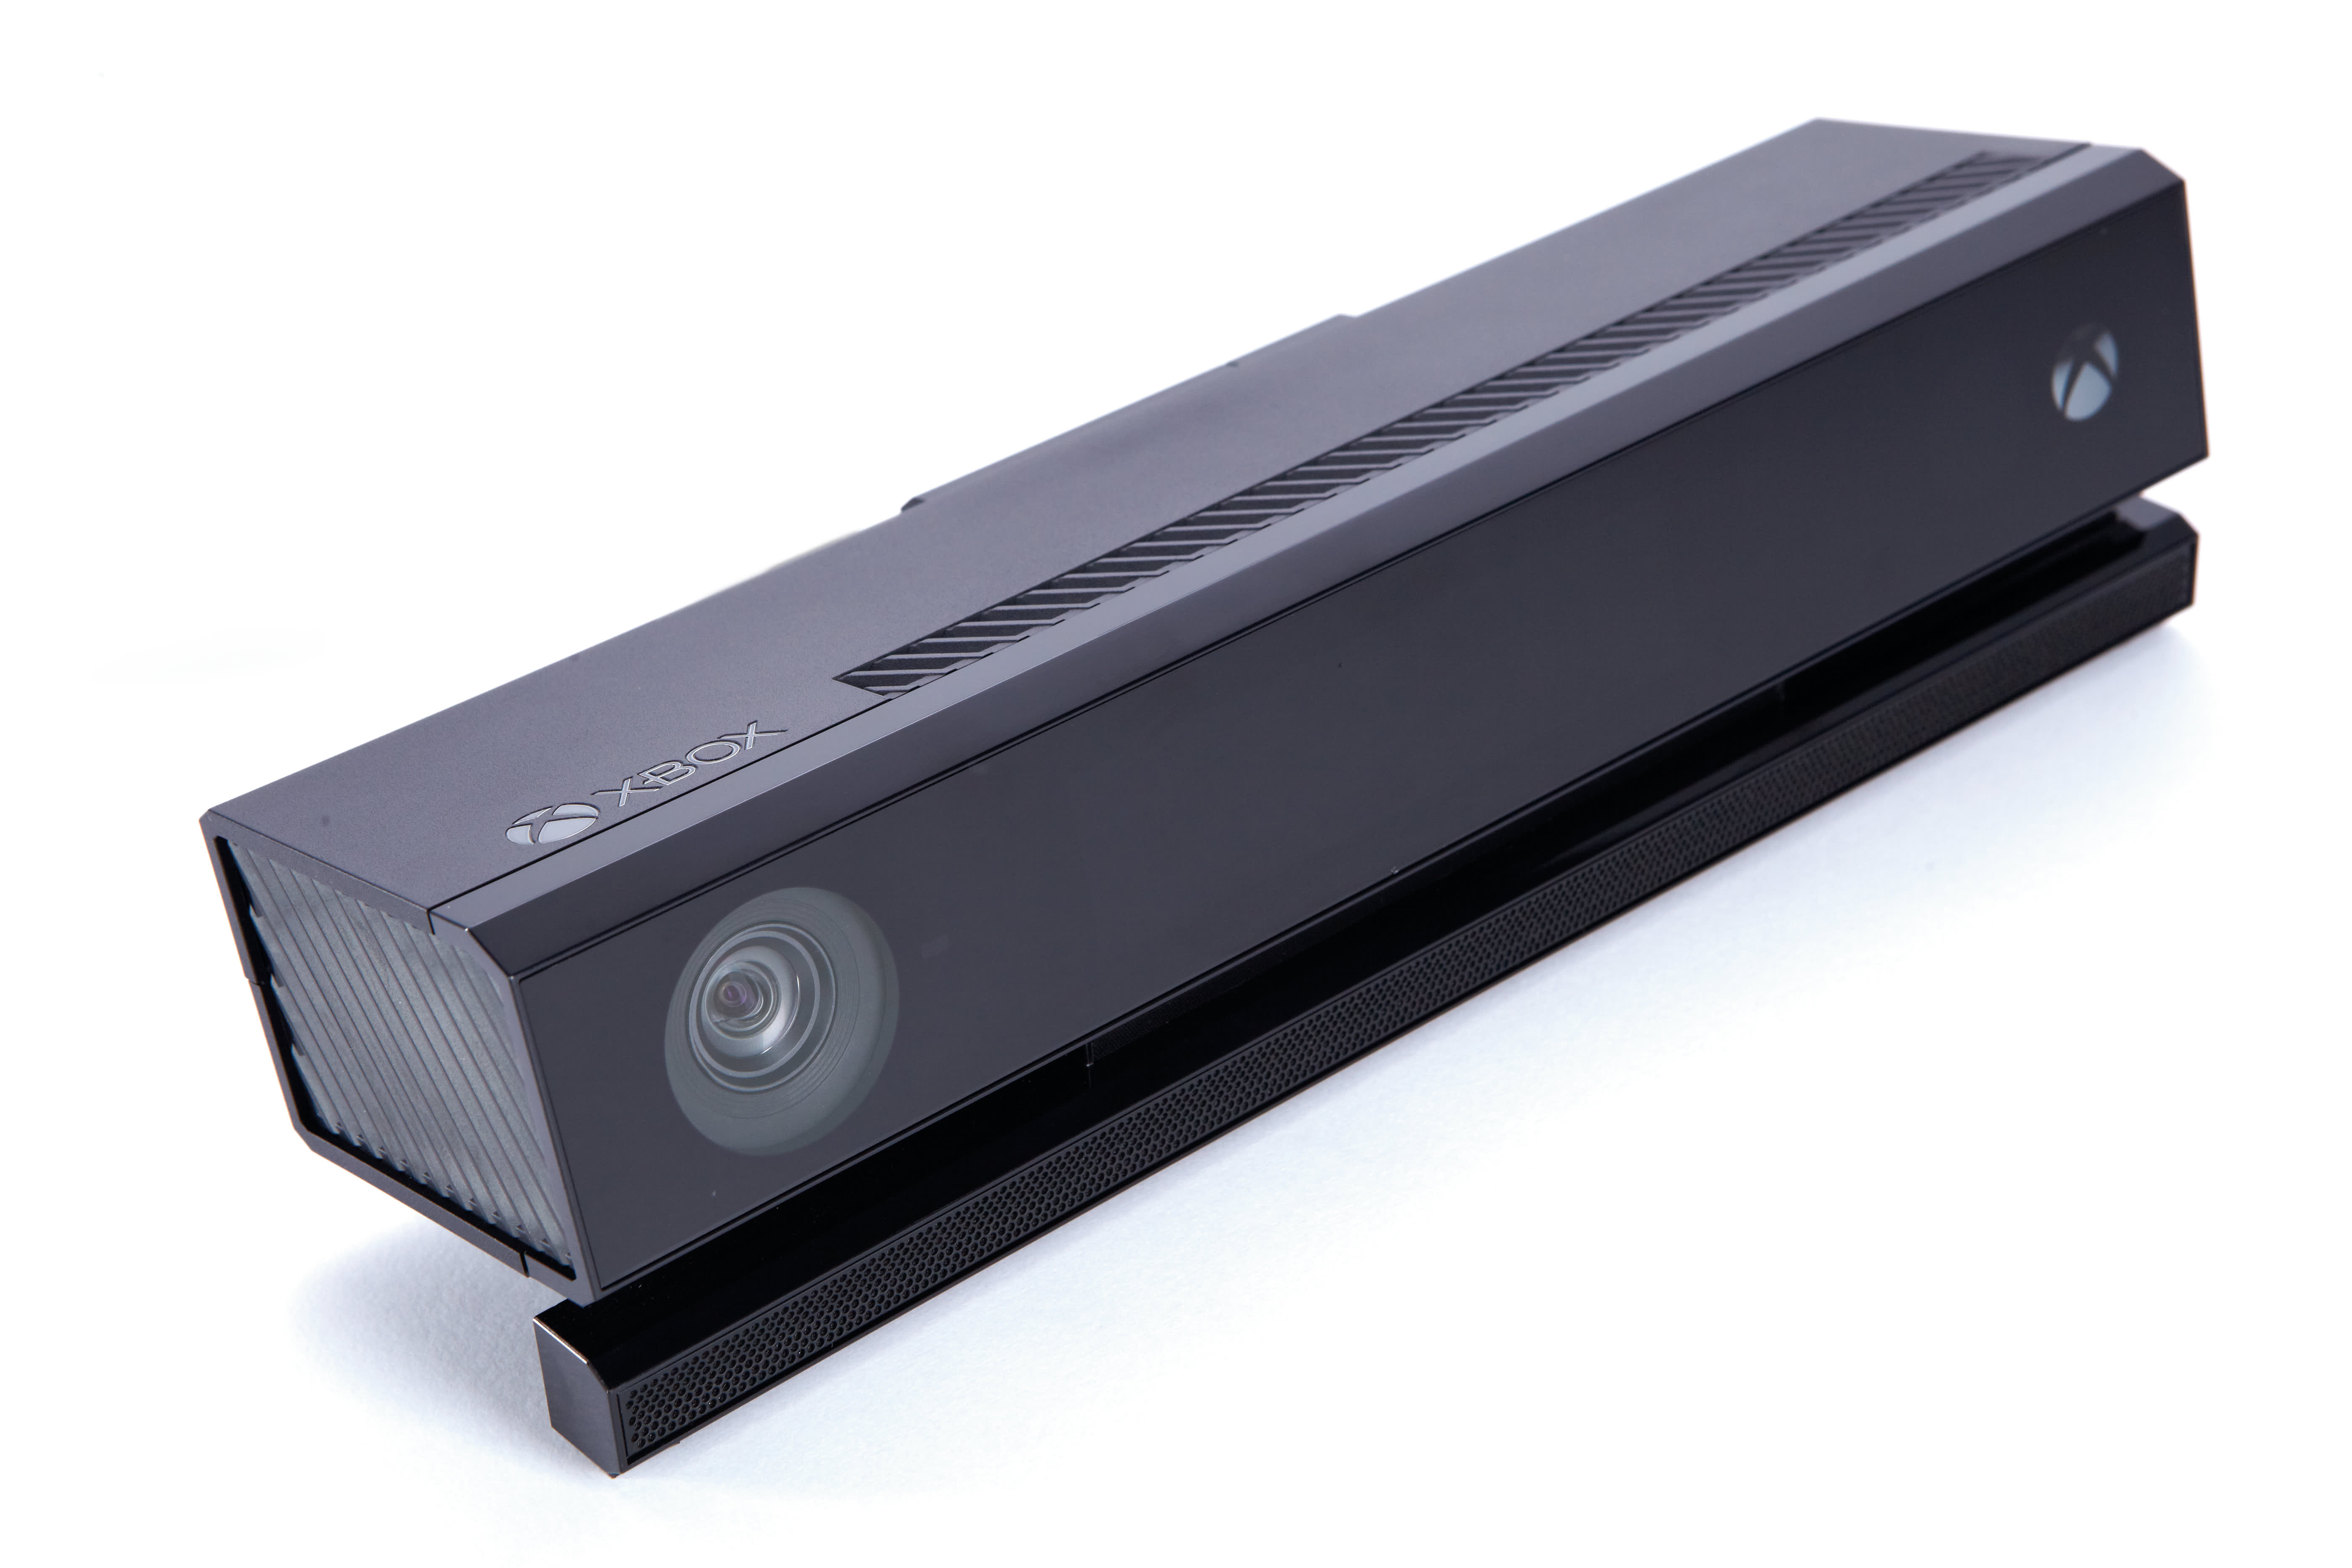 Xbox One console dumps Kinect hand gestures